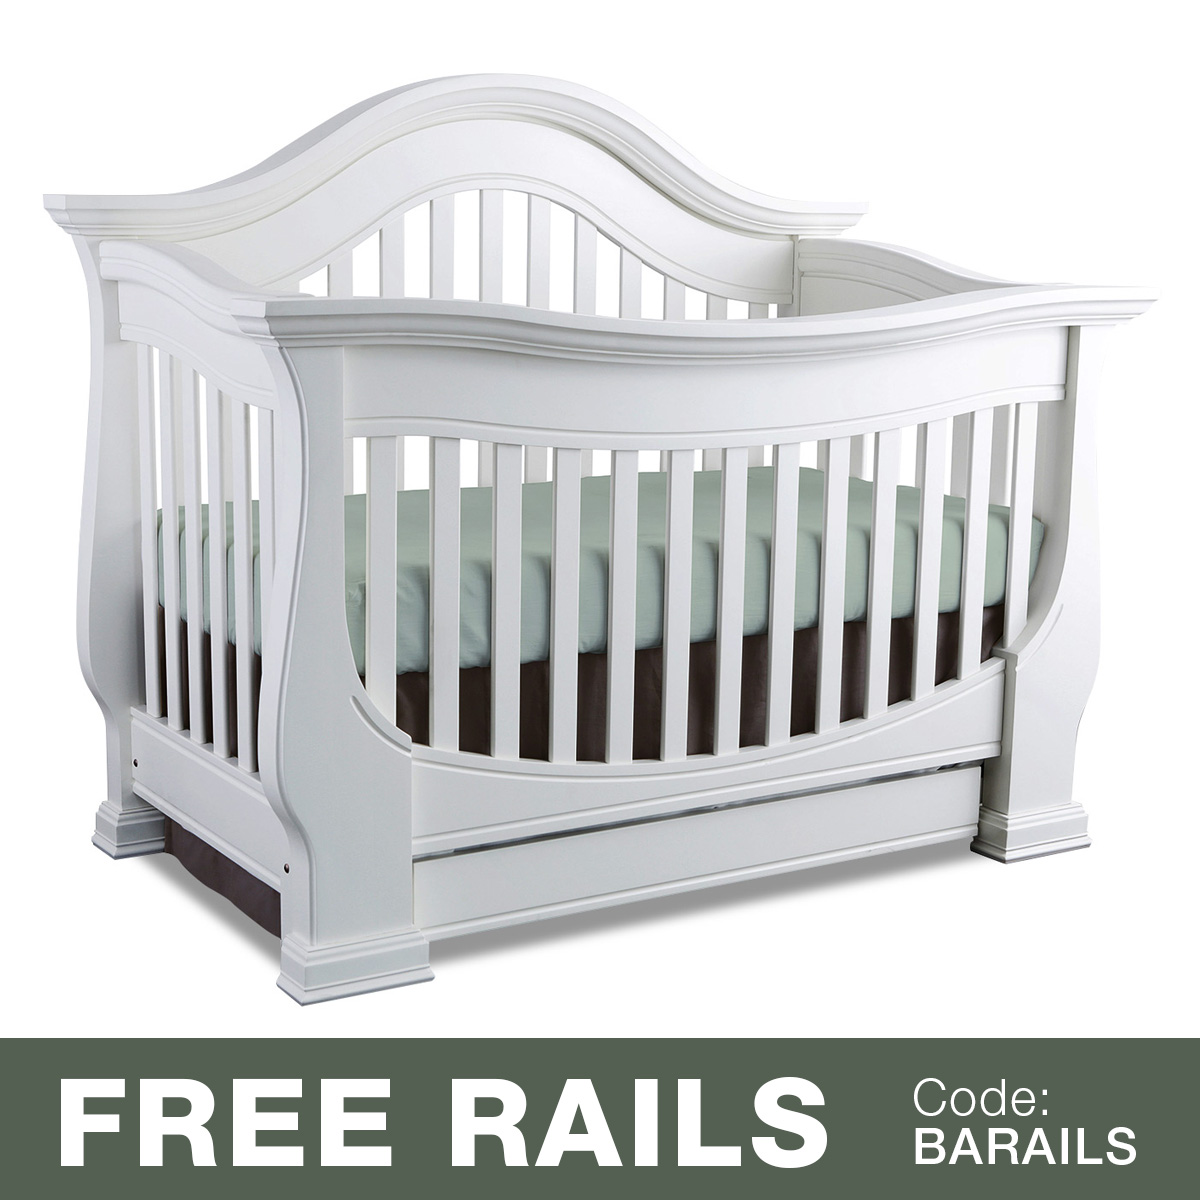 Baby Appleseed Davenport 3 In 1 Convertible Crib In Espresso FREE SHIPPING